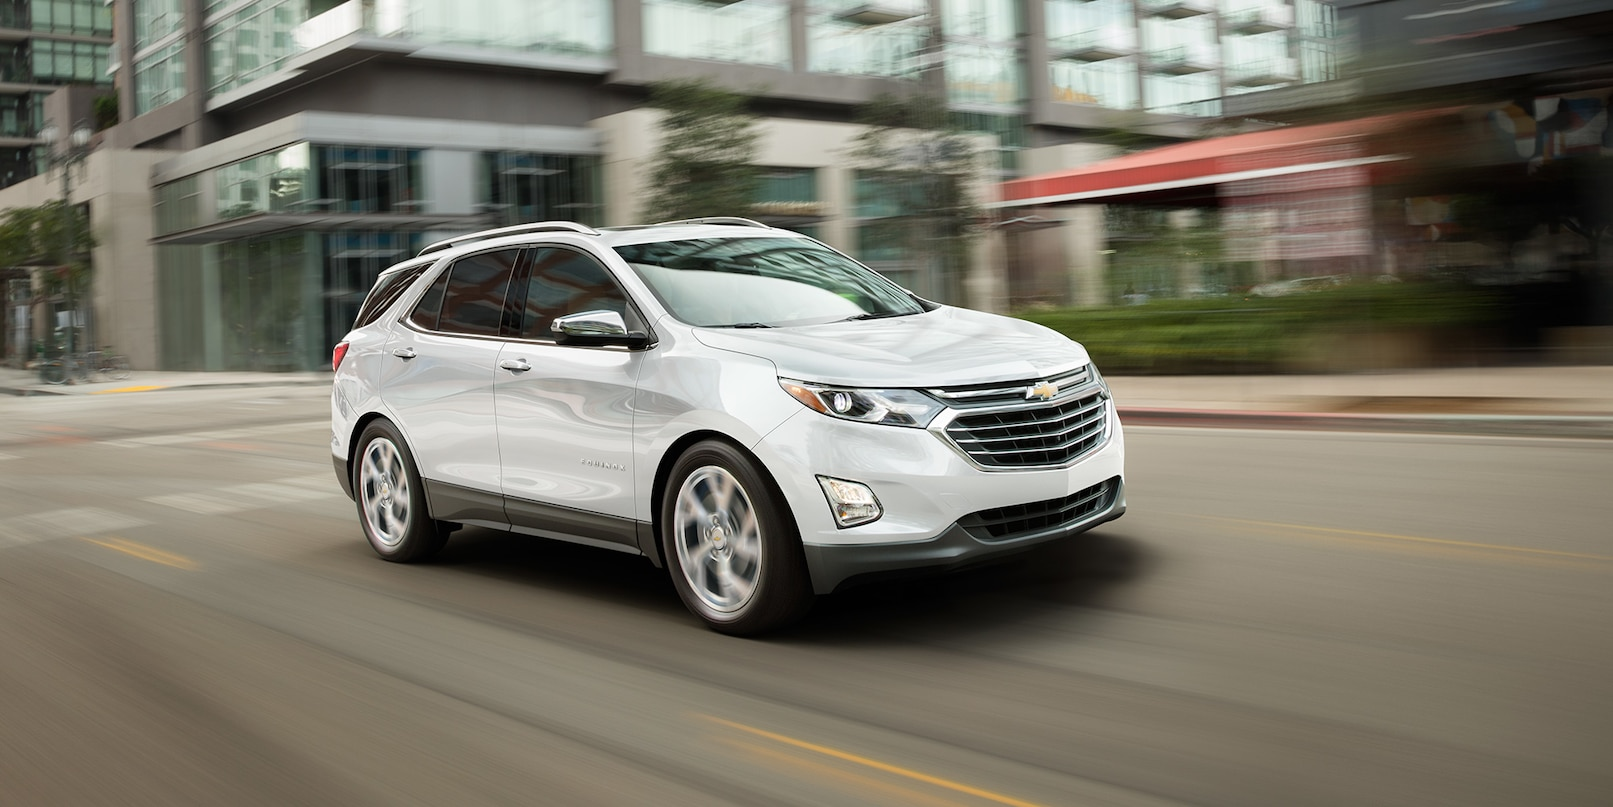 2019 Chevrolet Equinox Financing near Fairmont, MN